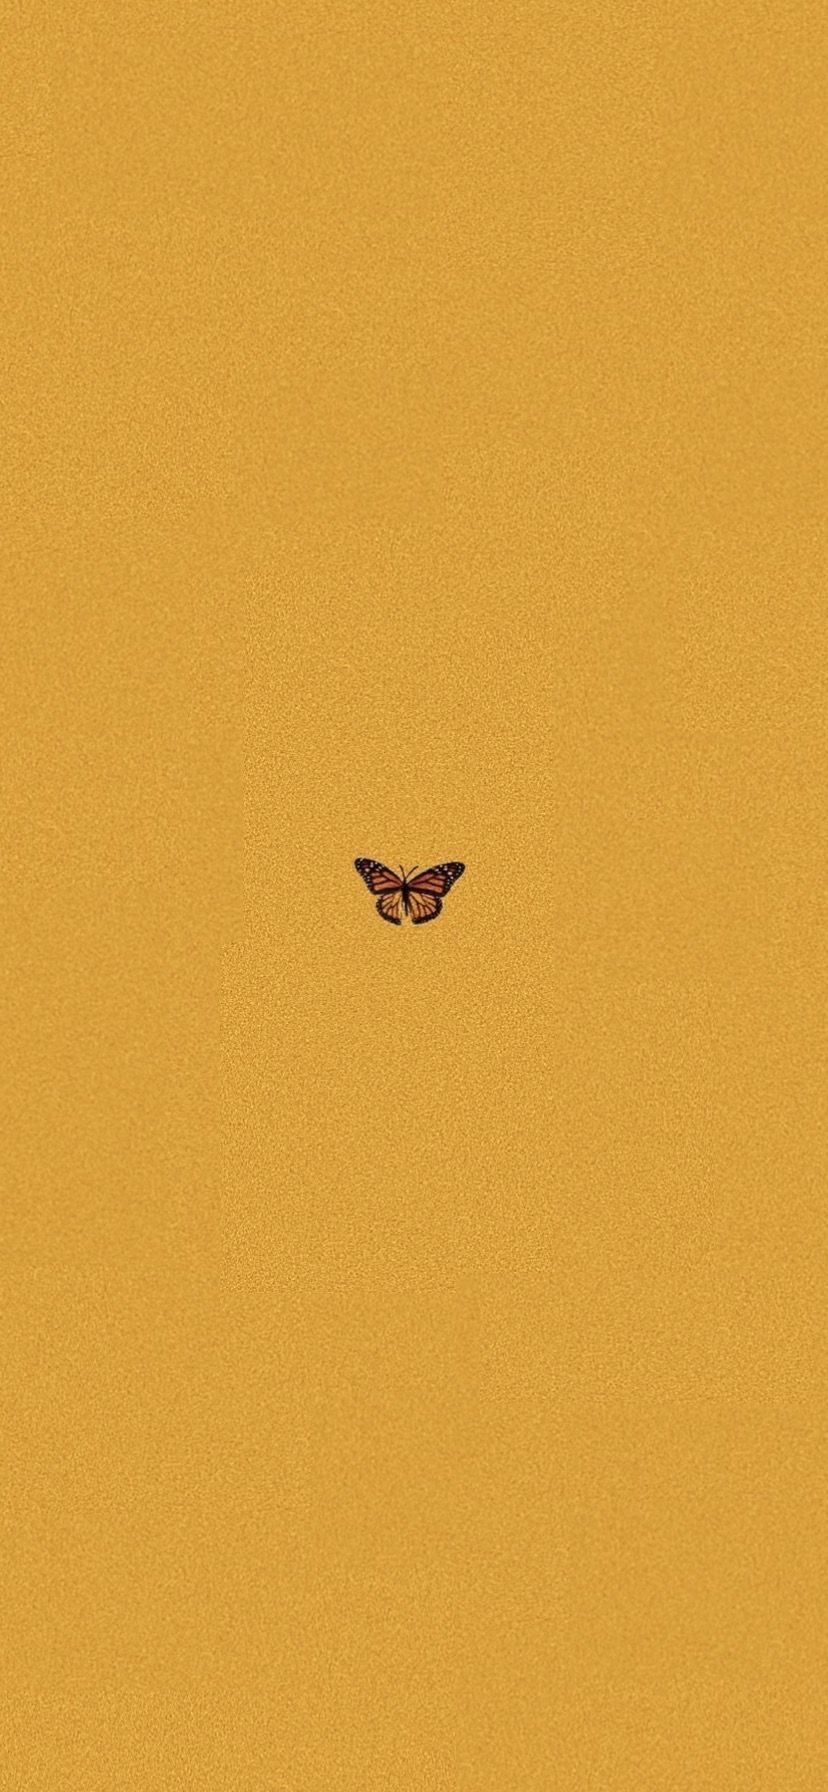 Wallpaper Yellow Aesthetic Butterfly Iphone X Iphone Wallpaper